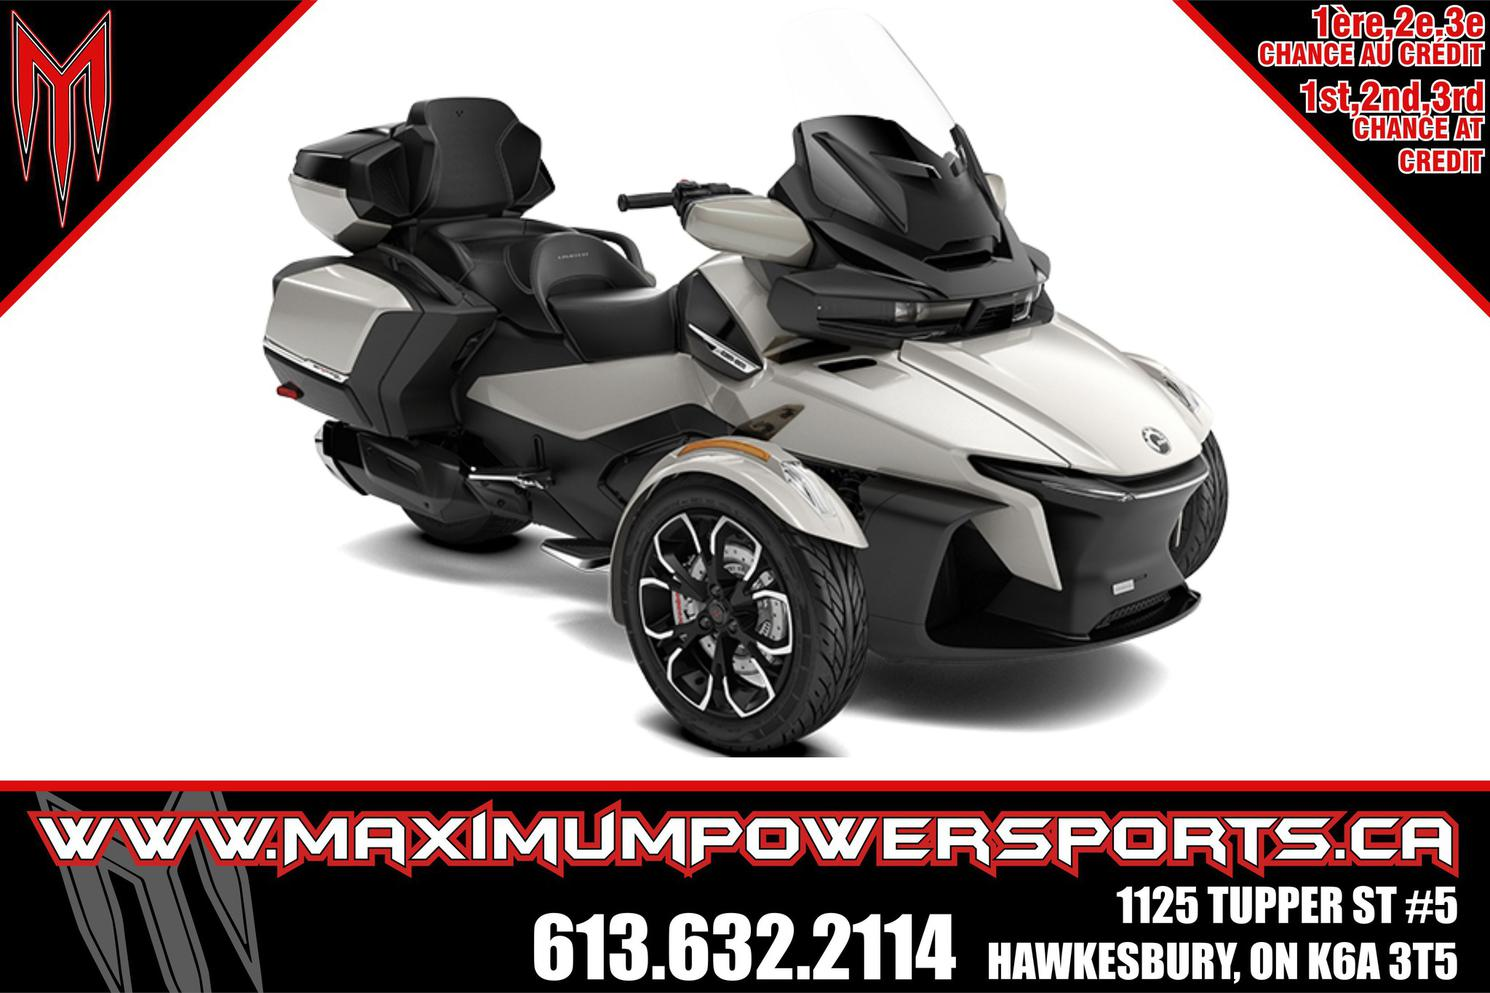 2021 Can-Am SPYDER RT LIMITED (SE6)